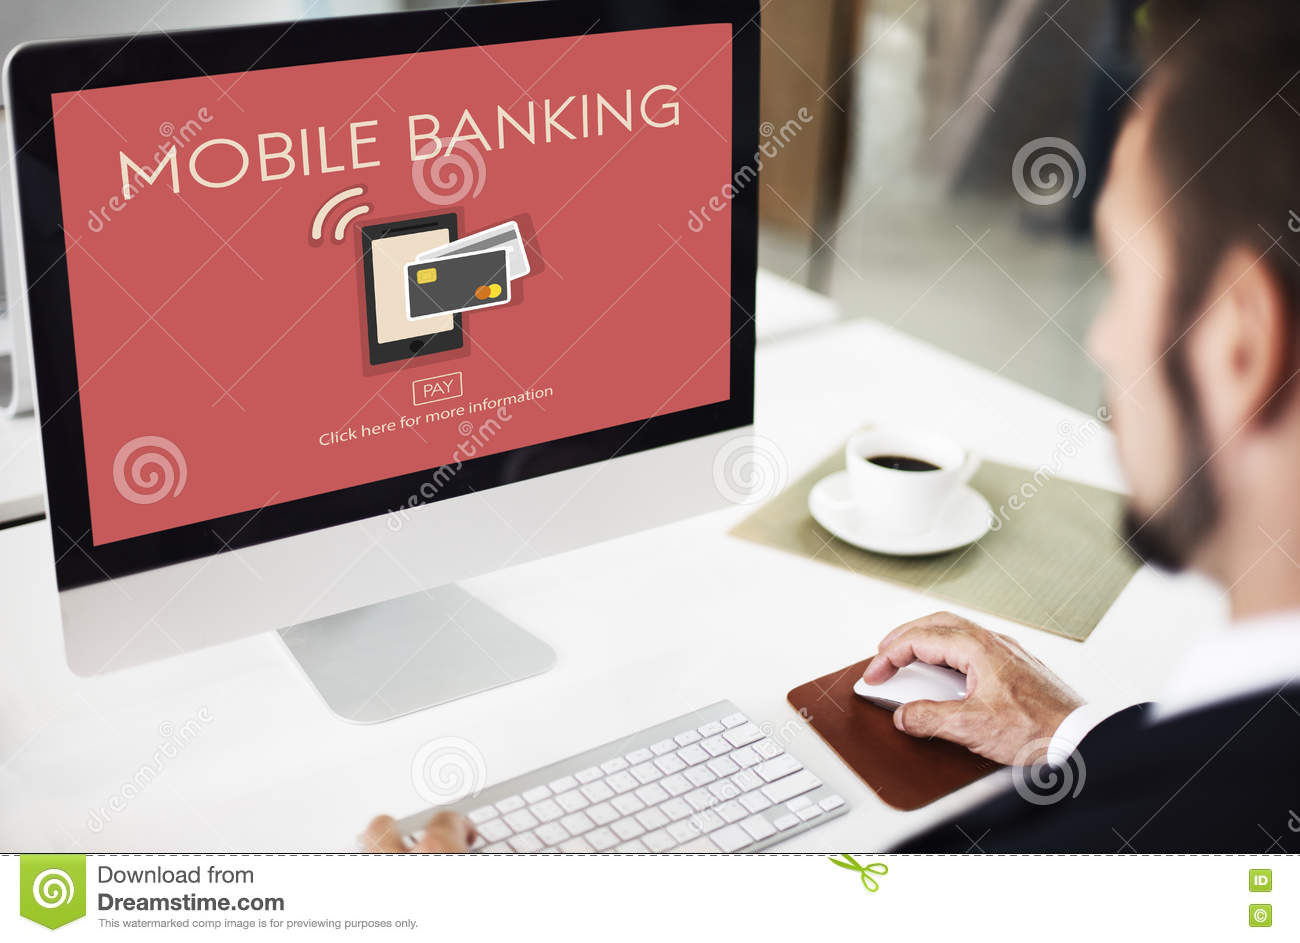 Aventcoin online banking mobile : Bat coin 4chan japanese